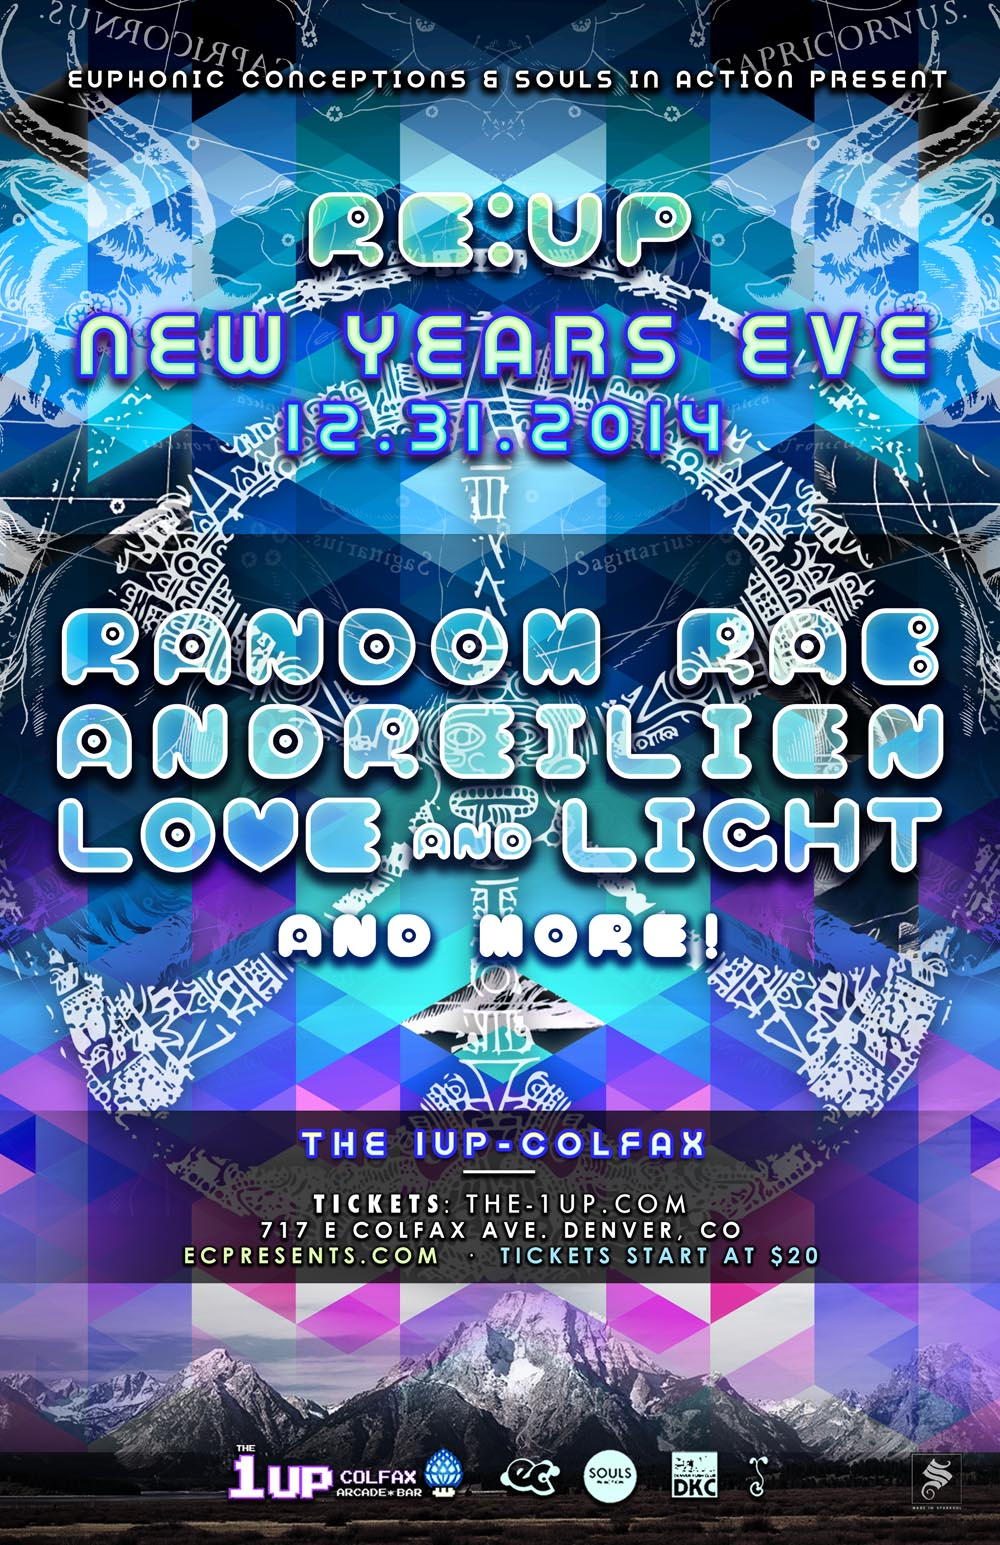 Denver New Years Eve 2014